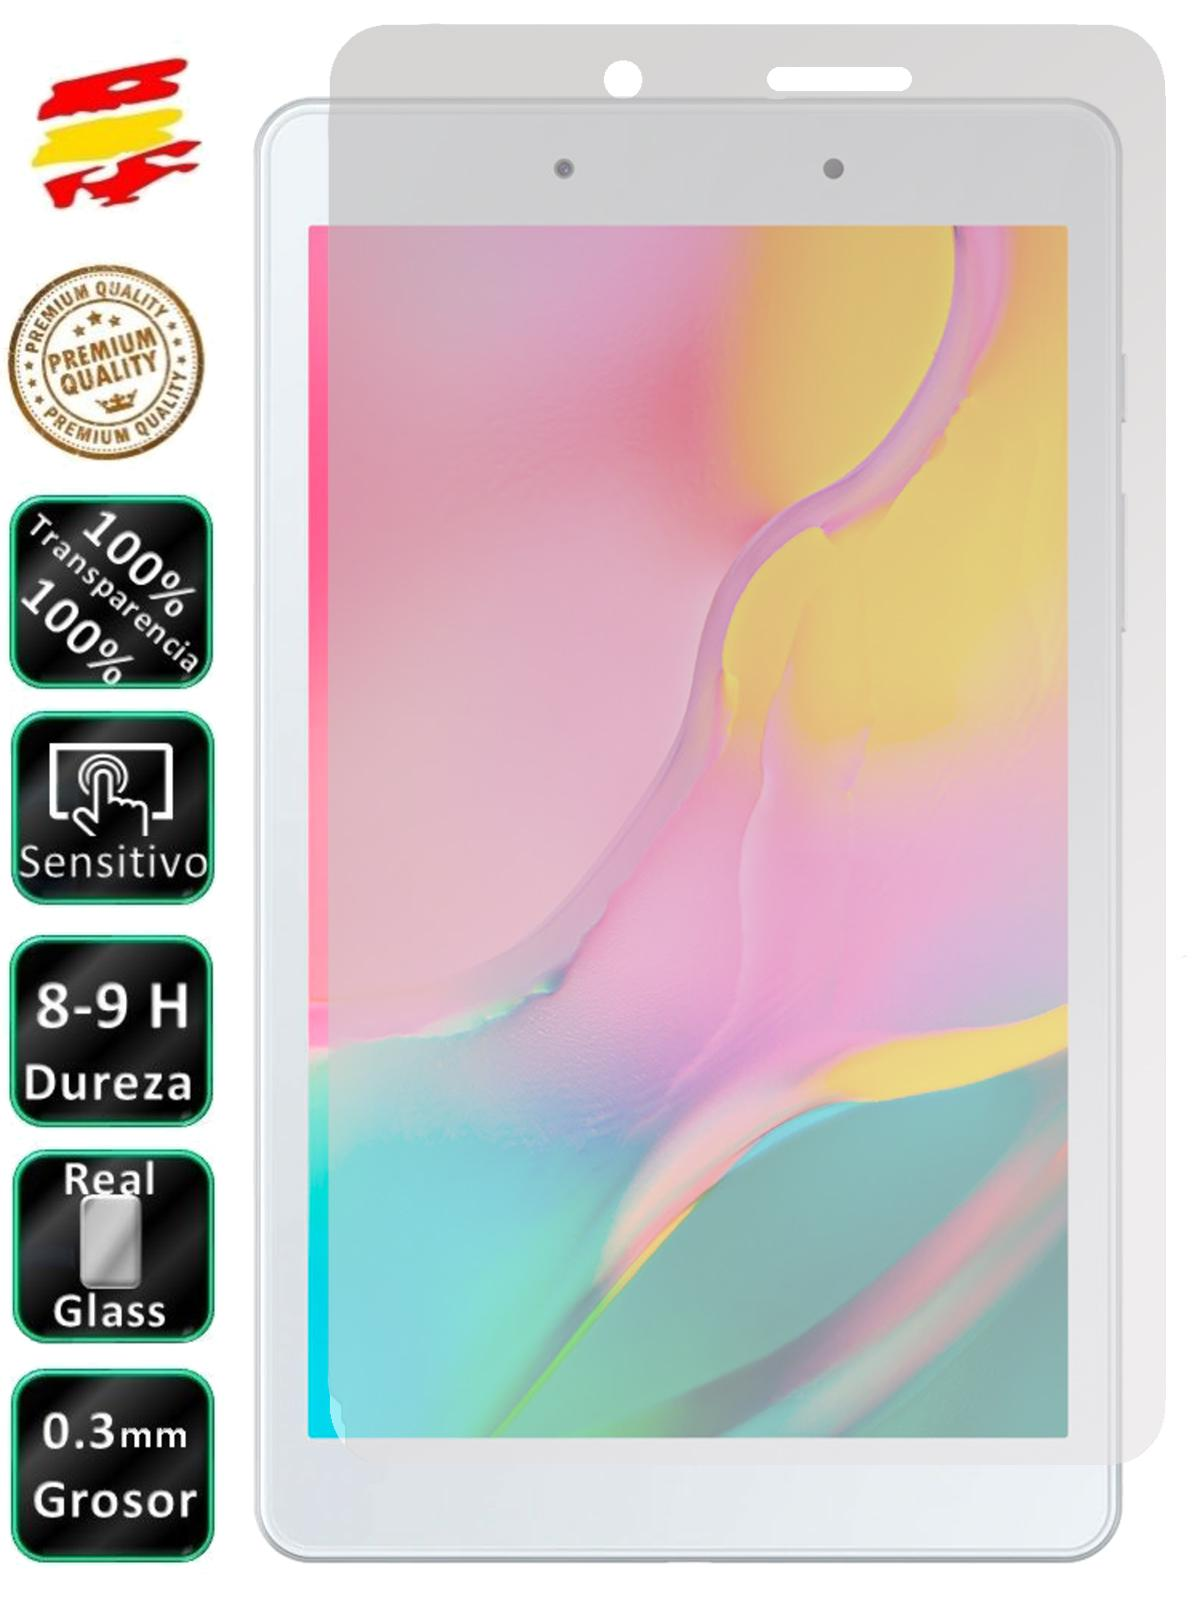 Protector Galaxy Tab A 8.0 WiFi 2019 T290 T295 Tempered Glass Screen Tablet